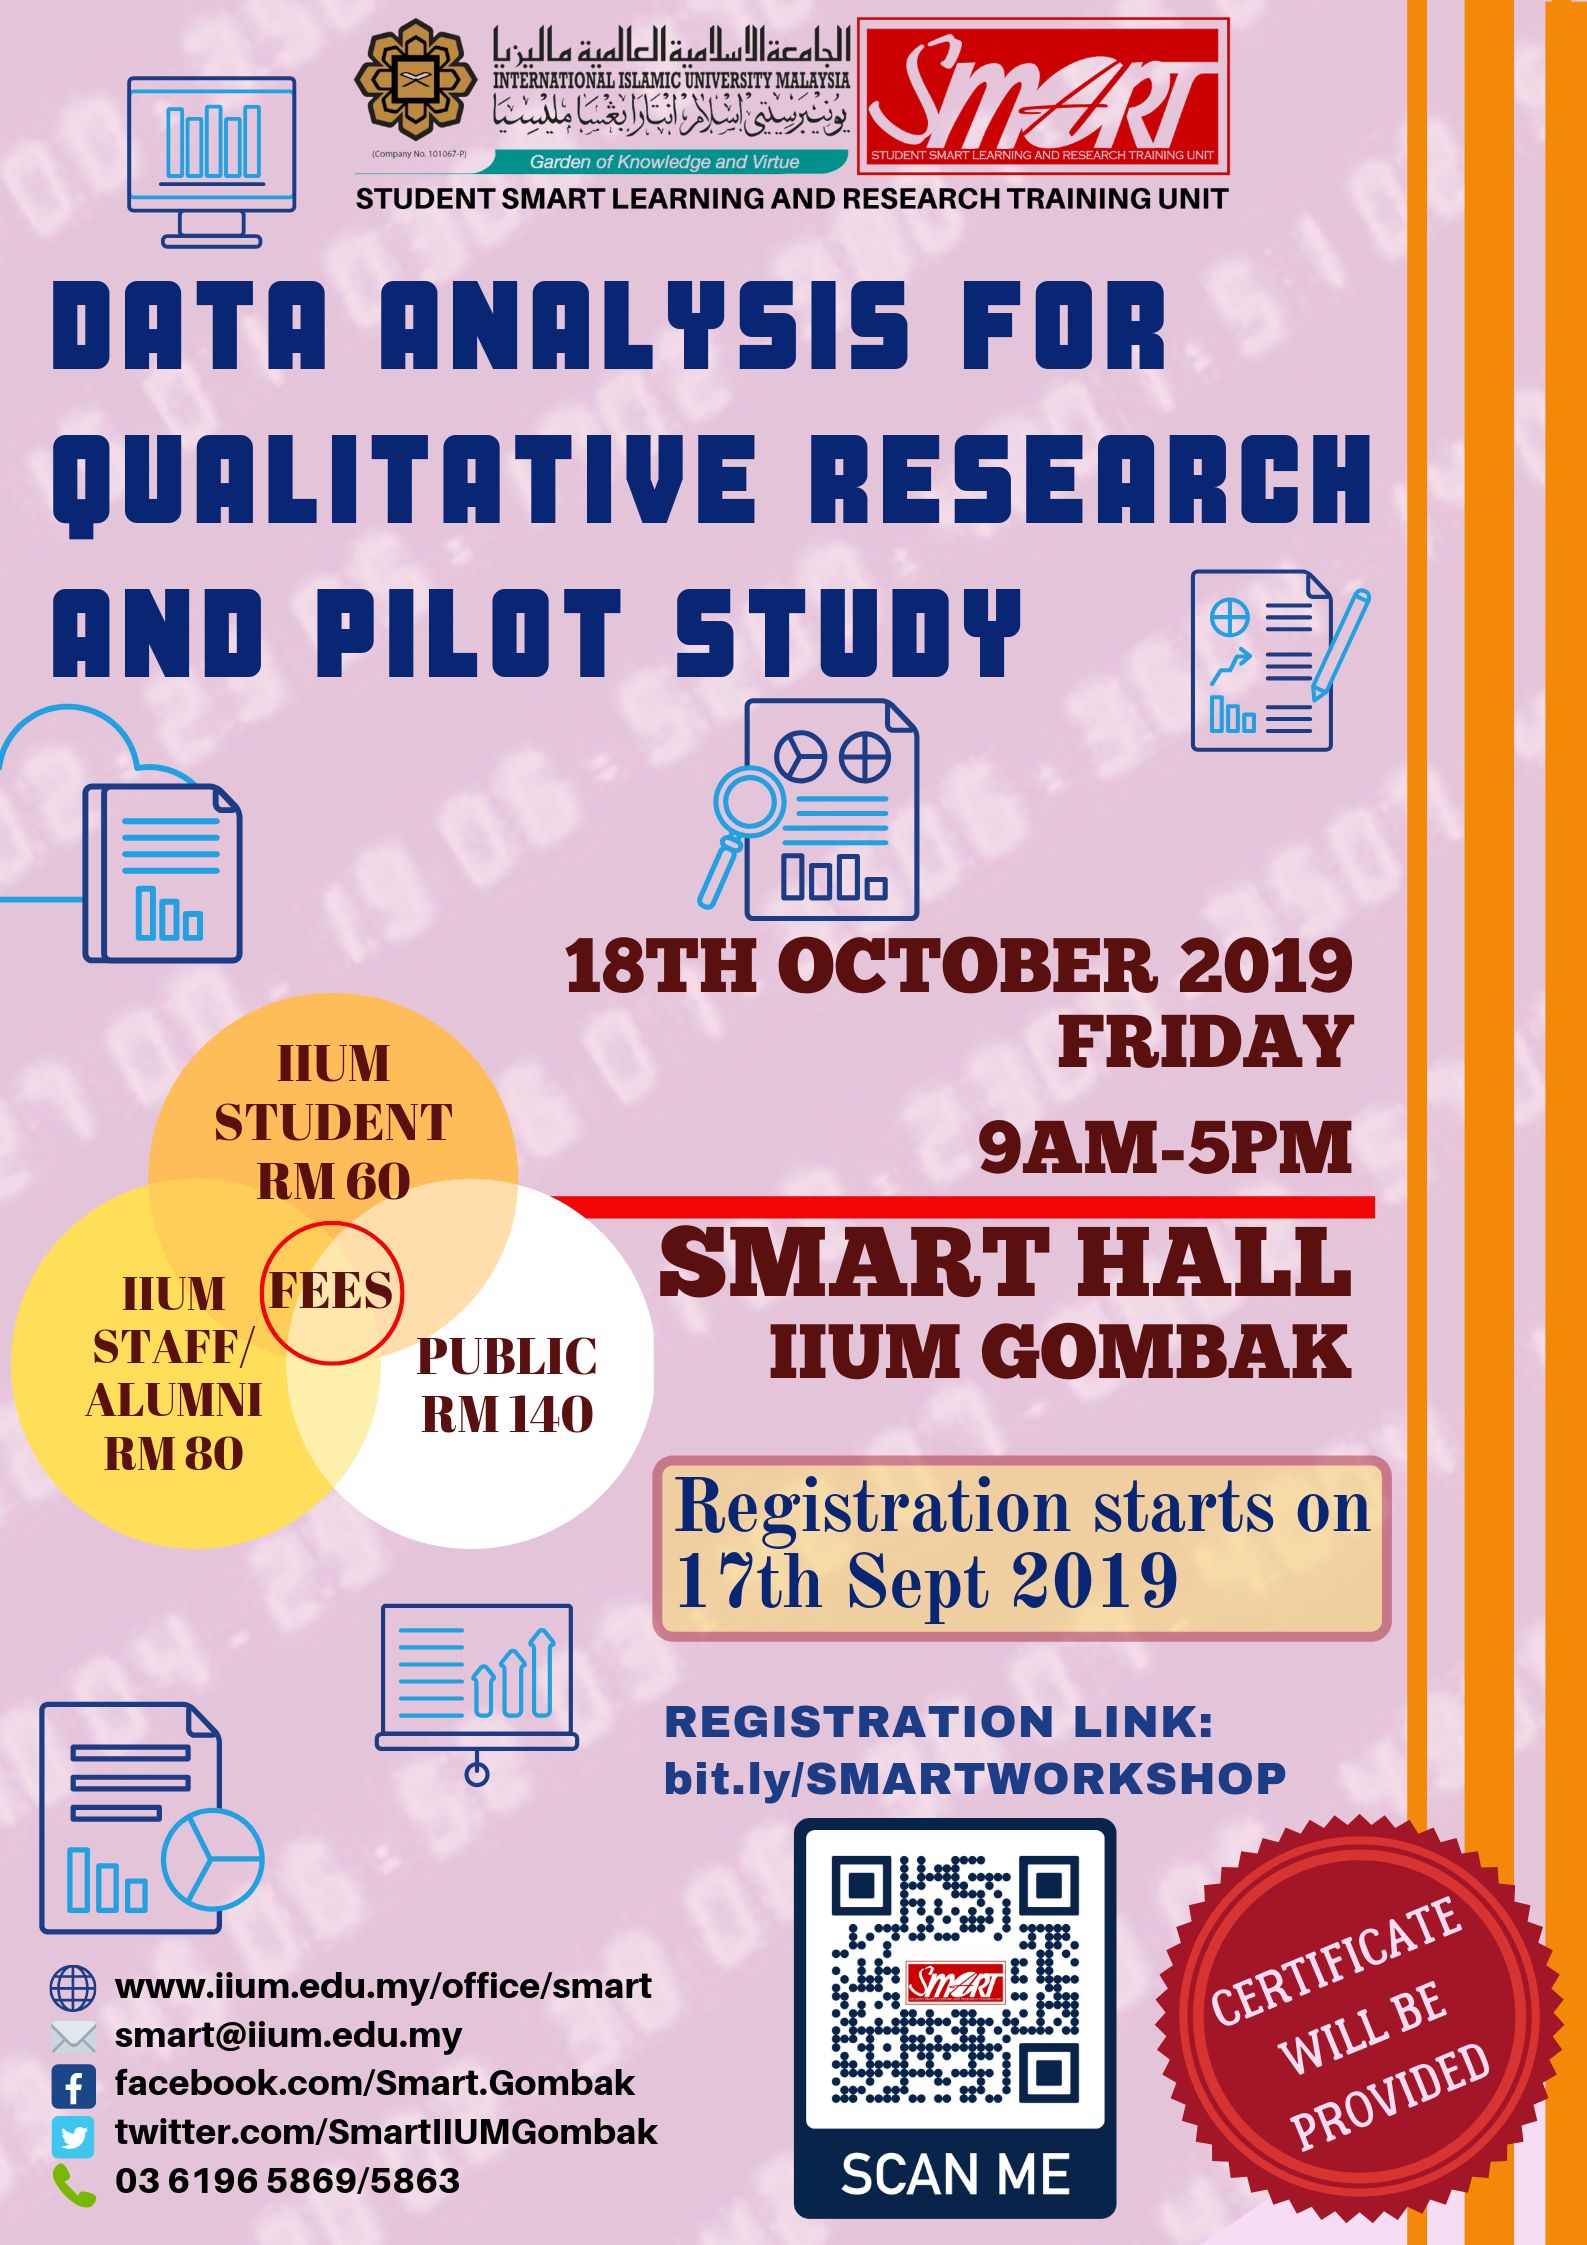 SEM 1, 19/20 - WORKSHOP - DATA ANALYSIS FOR QUALITATIVE RESEARCH AND PILOT STUDY